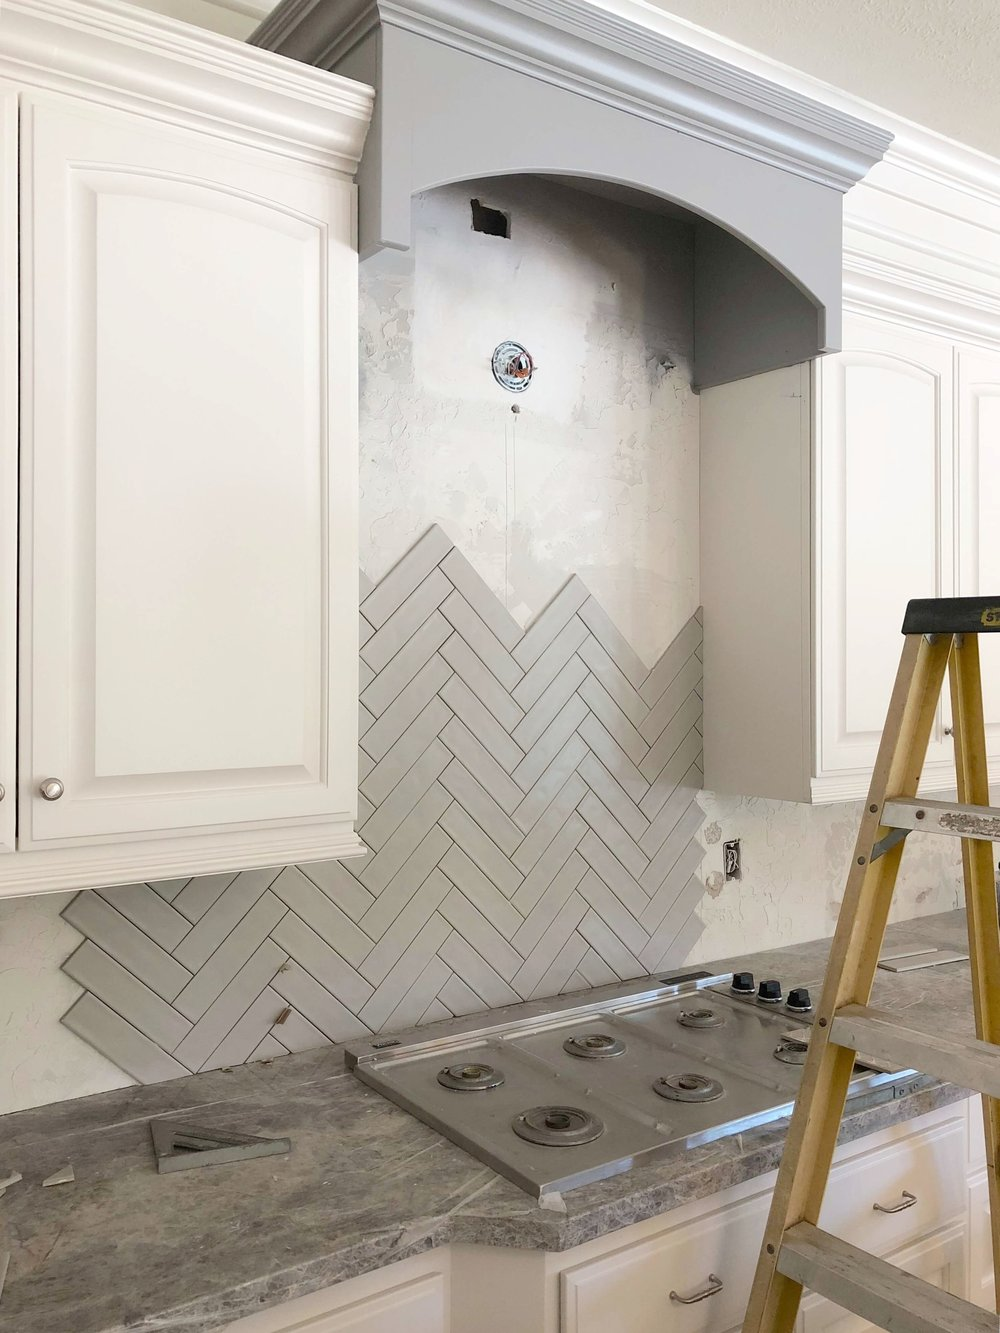 Gray herringbone tile backsplash going in now in kitchen remodel project | Designer: Carla Aston